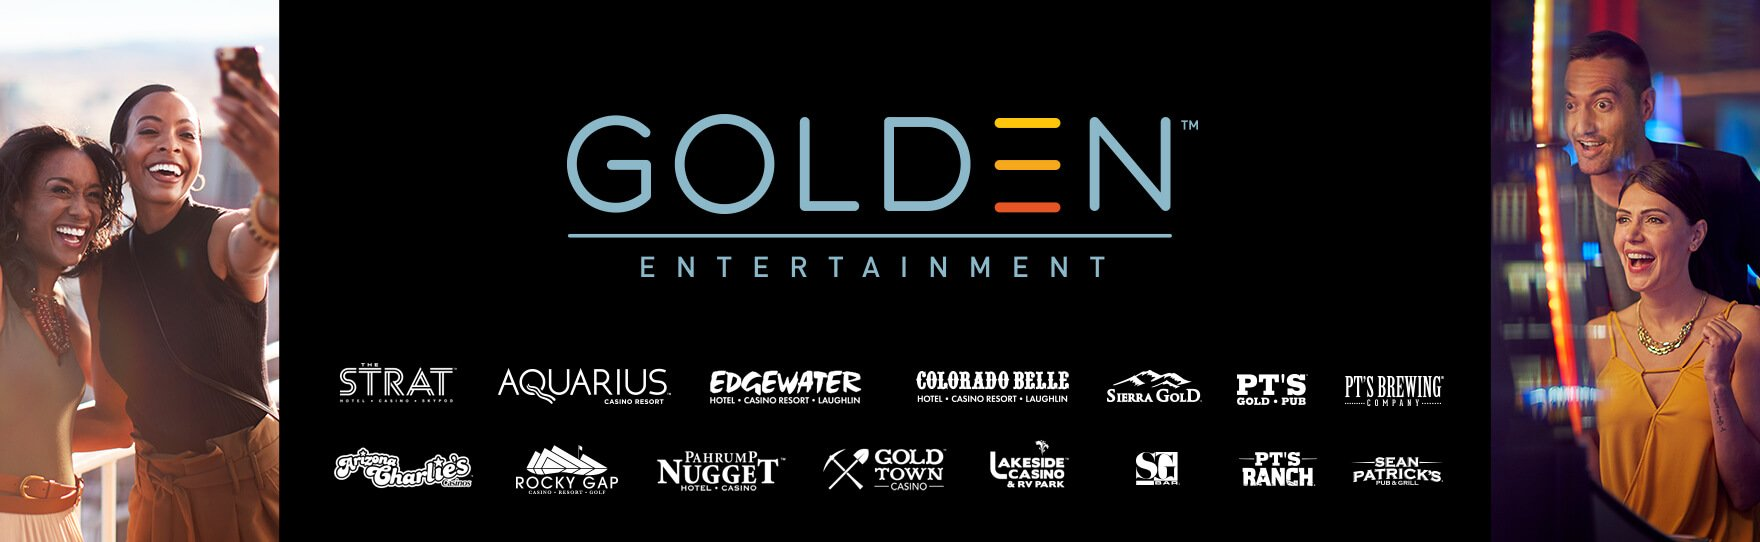 Golden Entertainment brand logos